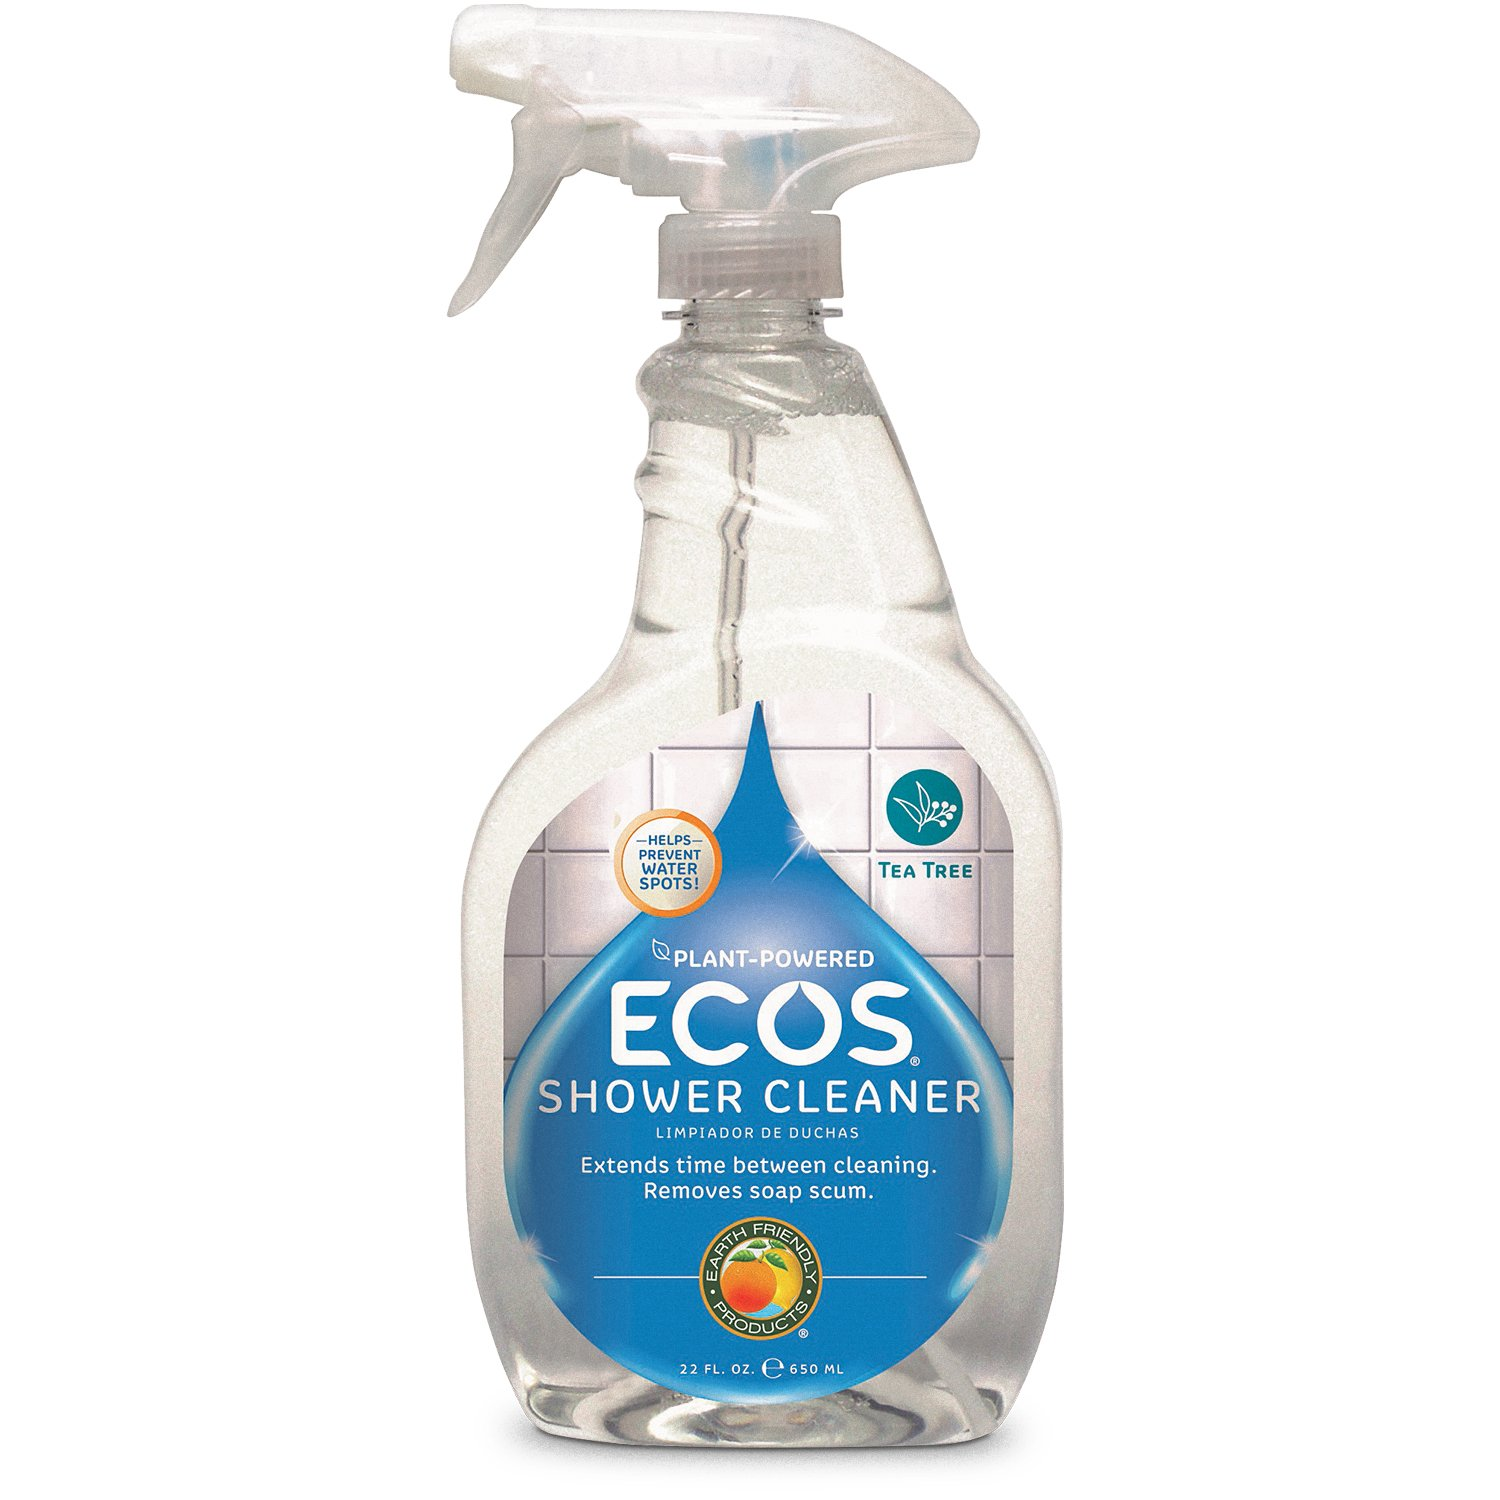 3.ECOS Shower Cleaner with Tea Tree Oil